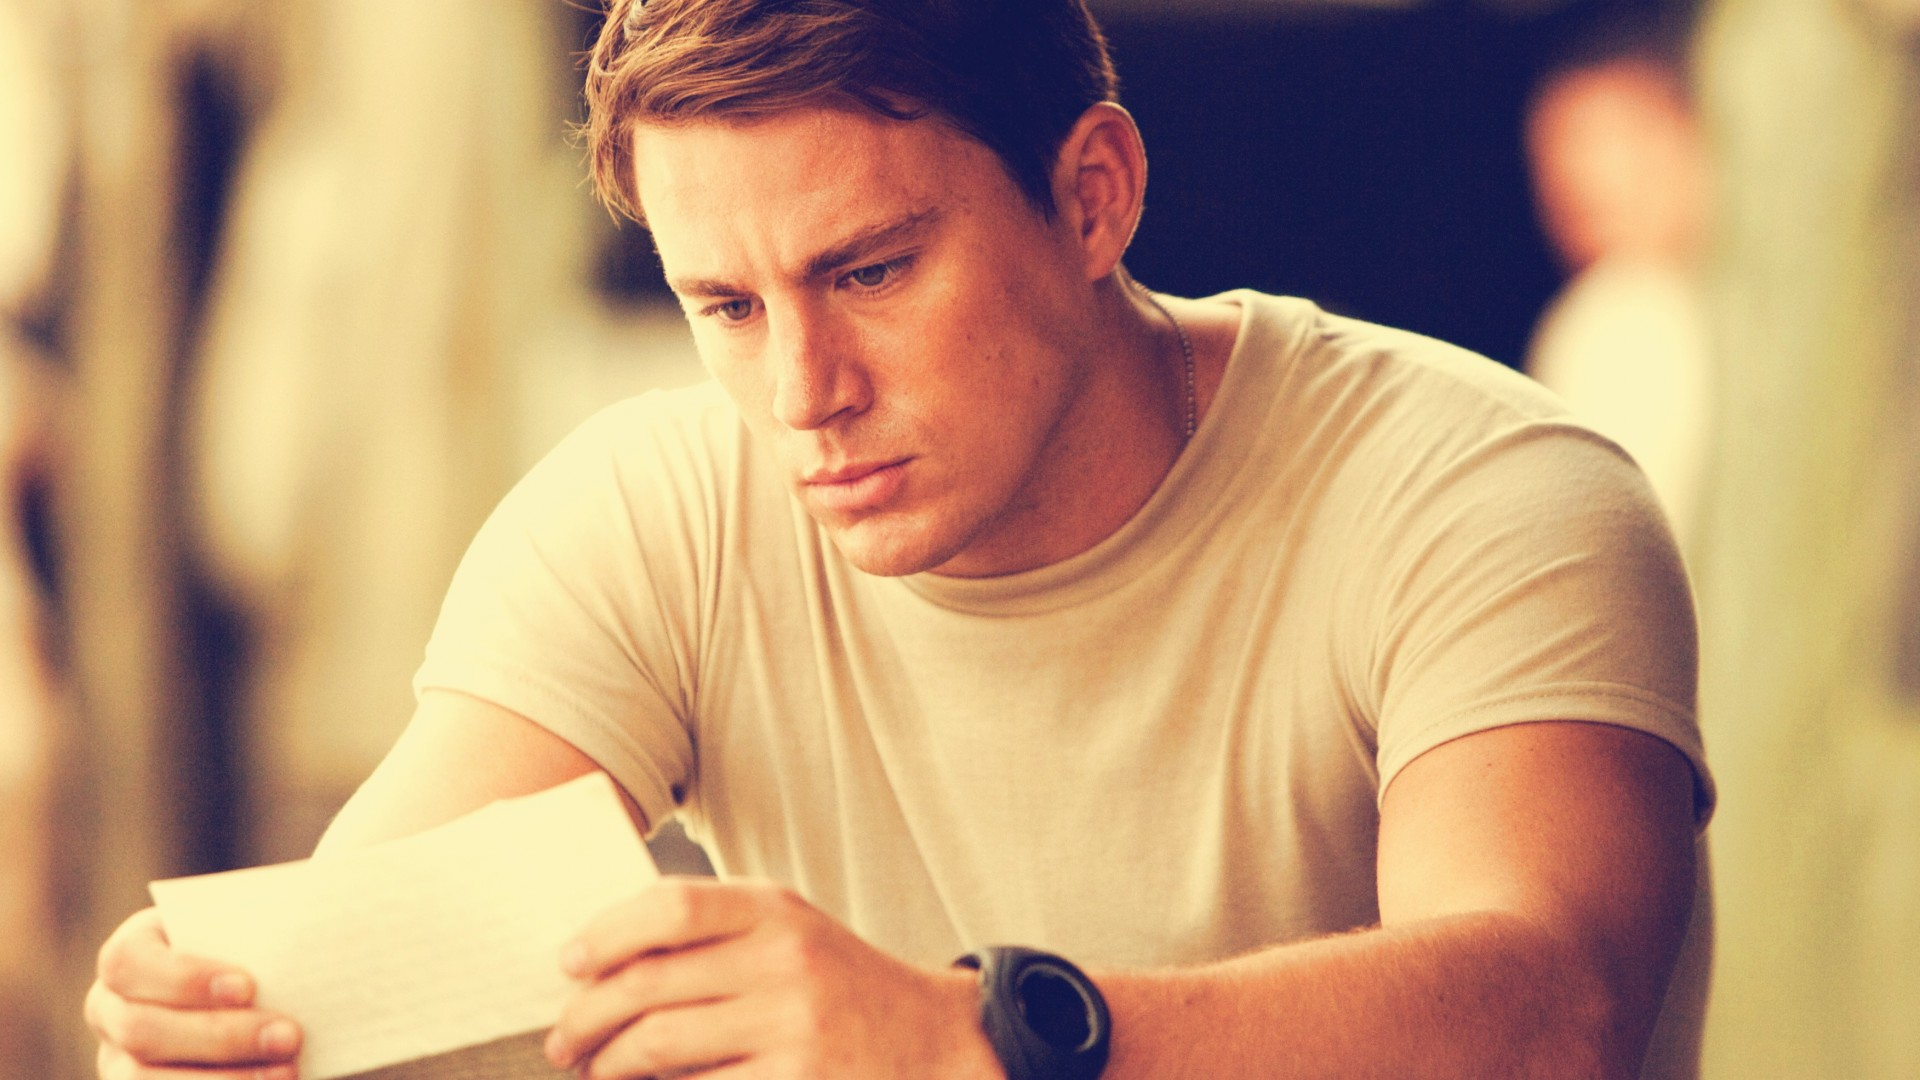 Channing Tatum Movie Shoot 70.71 Kb